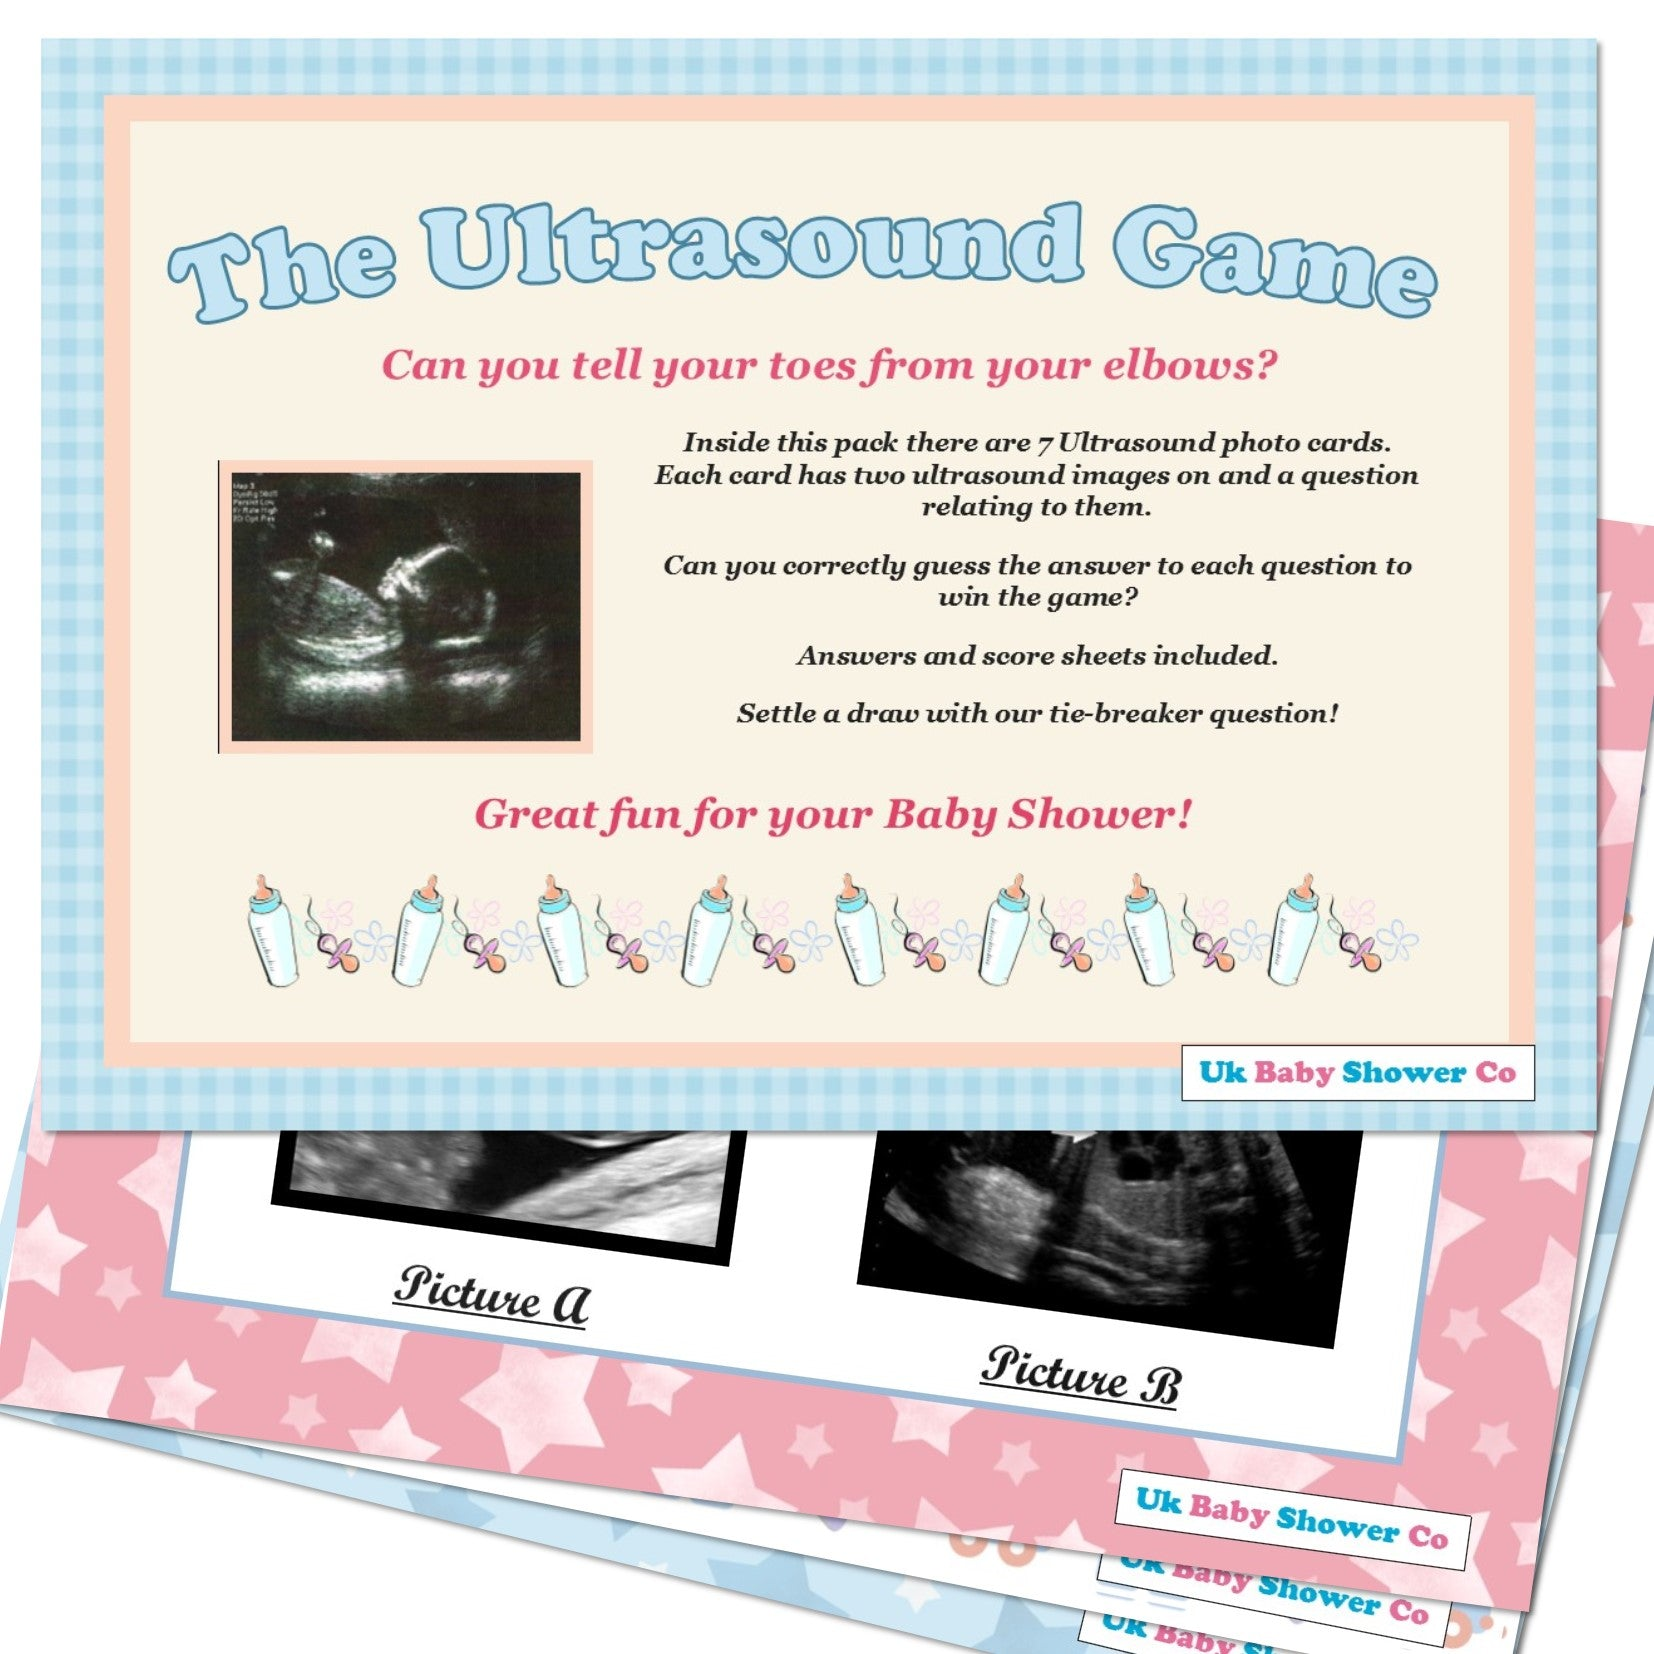 The Ultrasound Game - Uk Baby Shower Co ltd